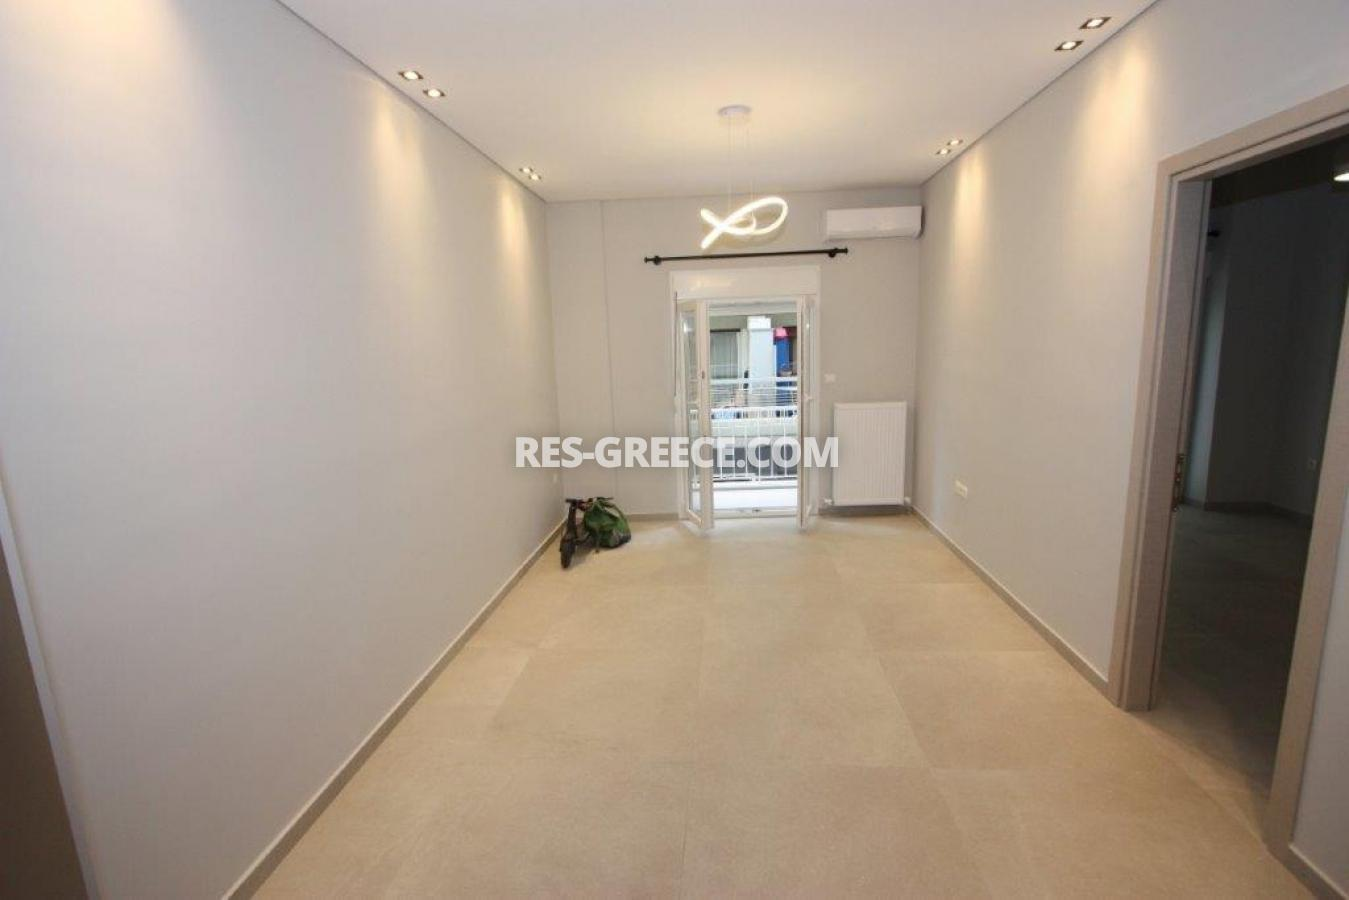 Poli 11, Central Macedonia, Greece - investment appartment in Thessaloniki - Photo 4